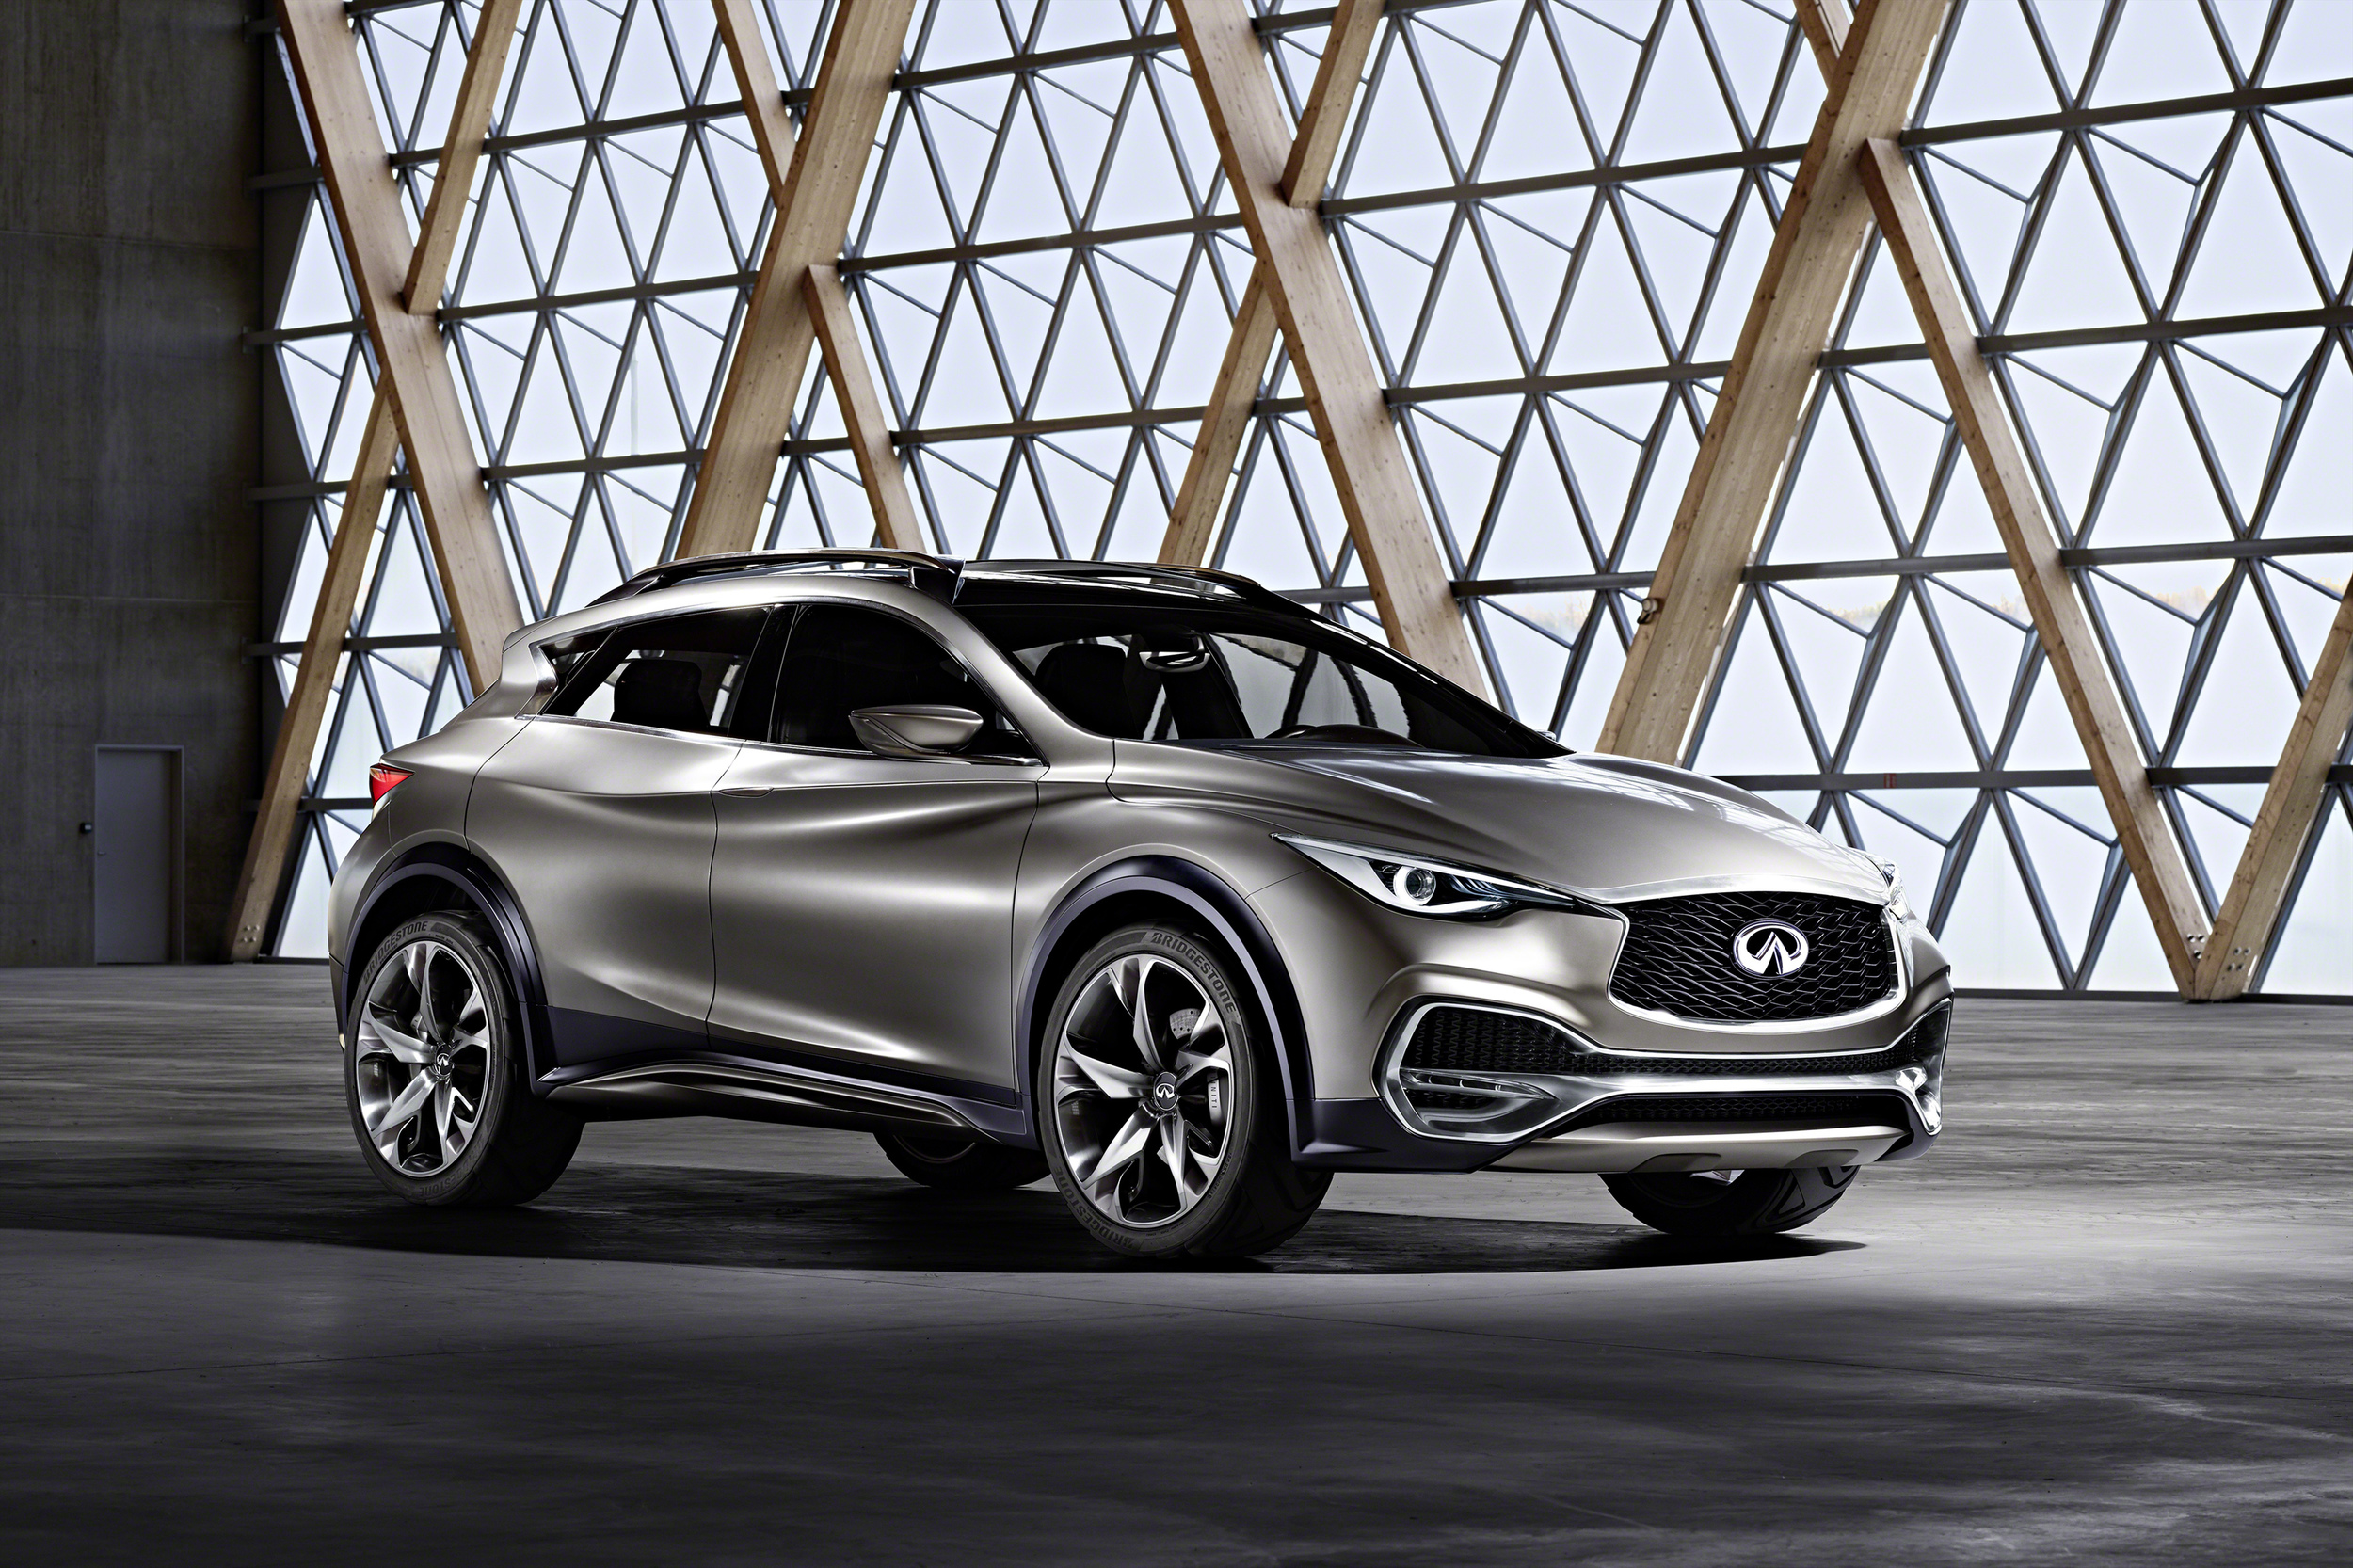 front reviews find cars top guide car buyers infinity make quarter gear infiniti